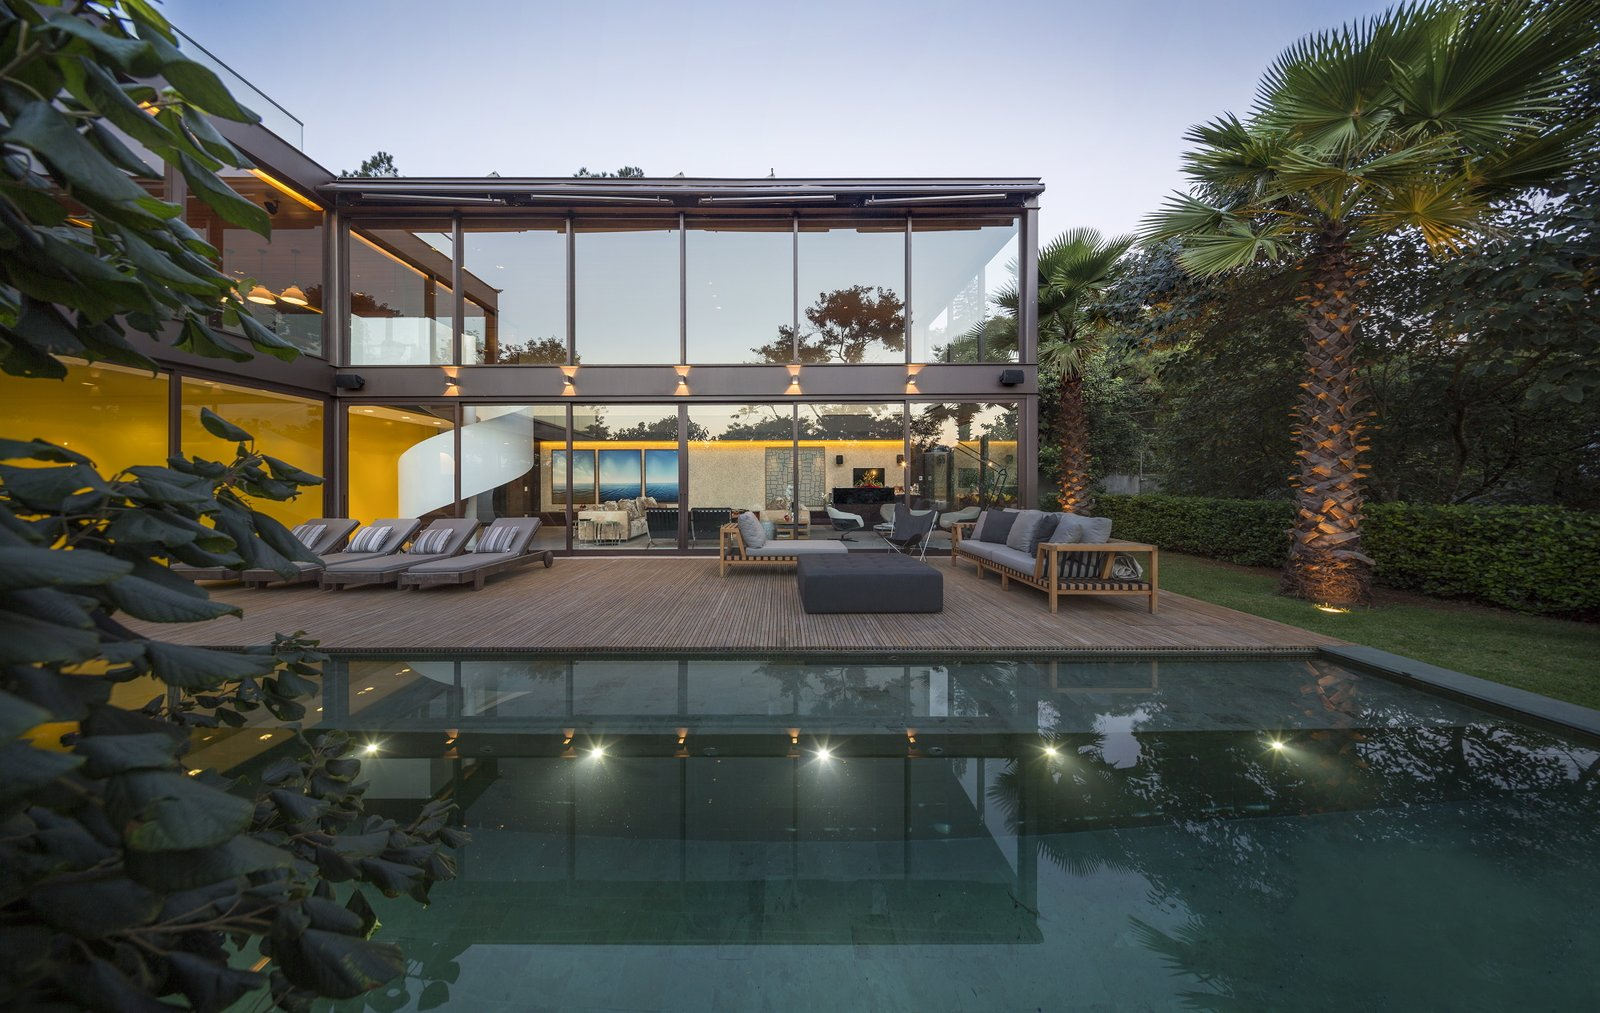 This Stunning Brazilian Residence Takes Cues From Mies van der Rohe